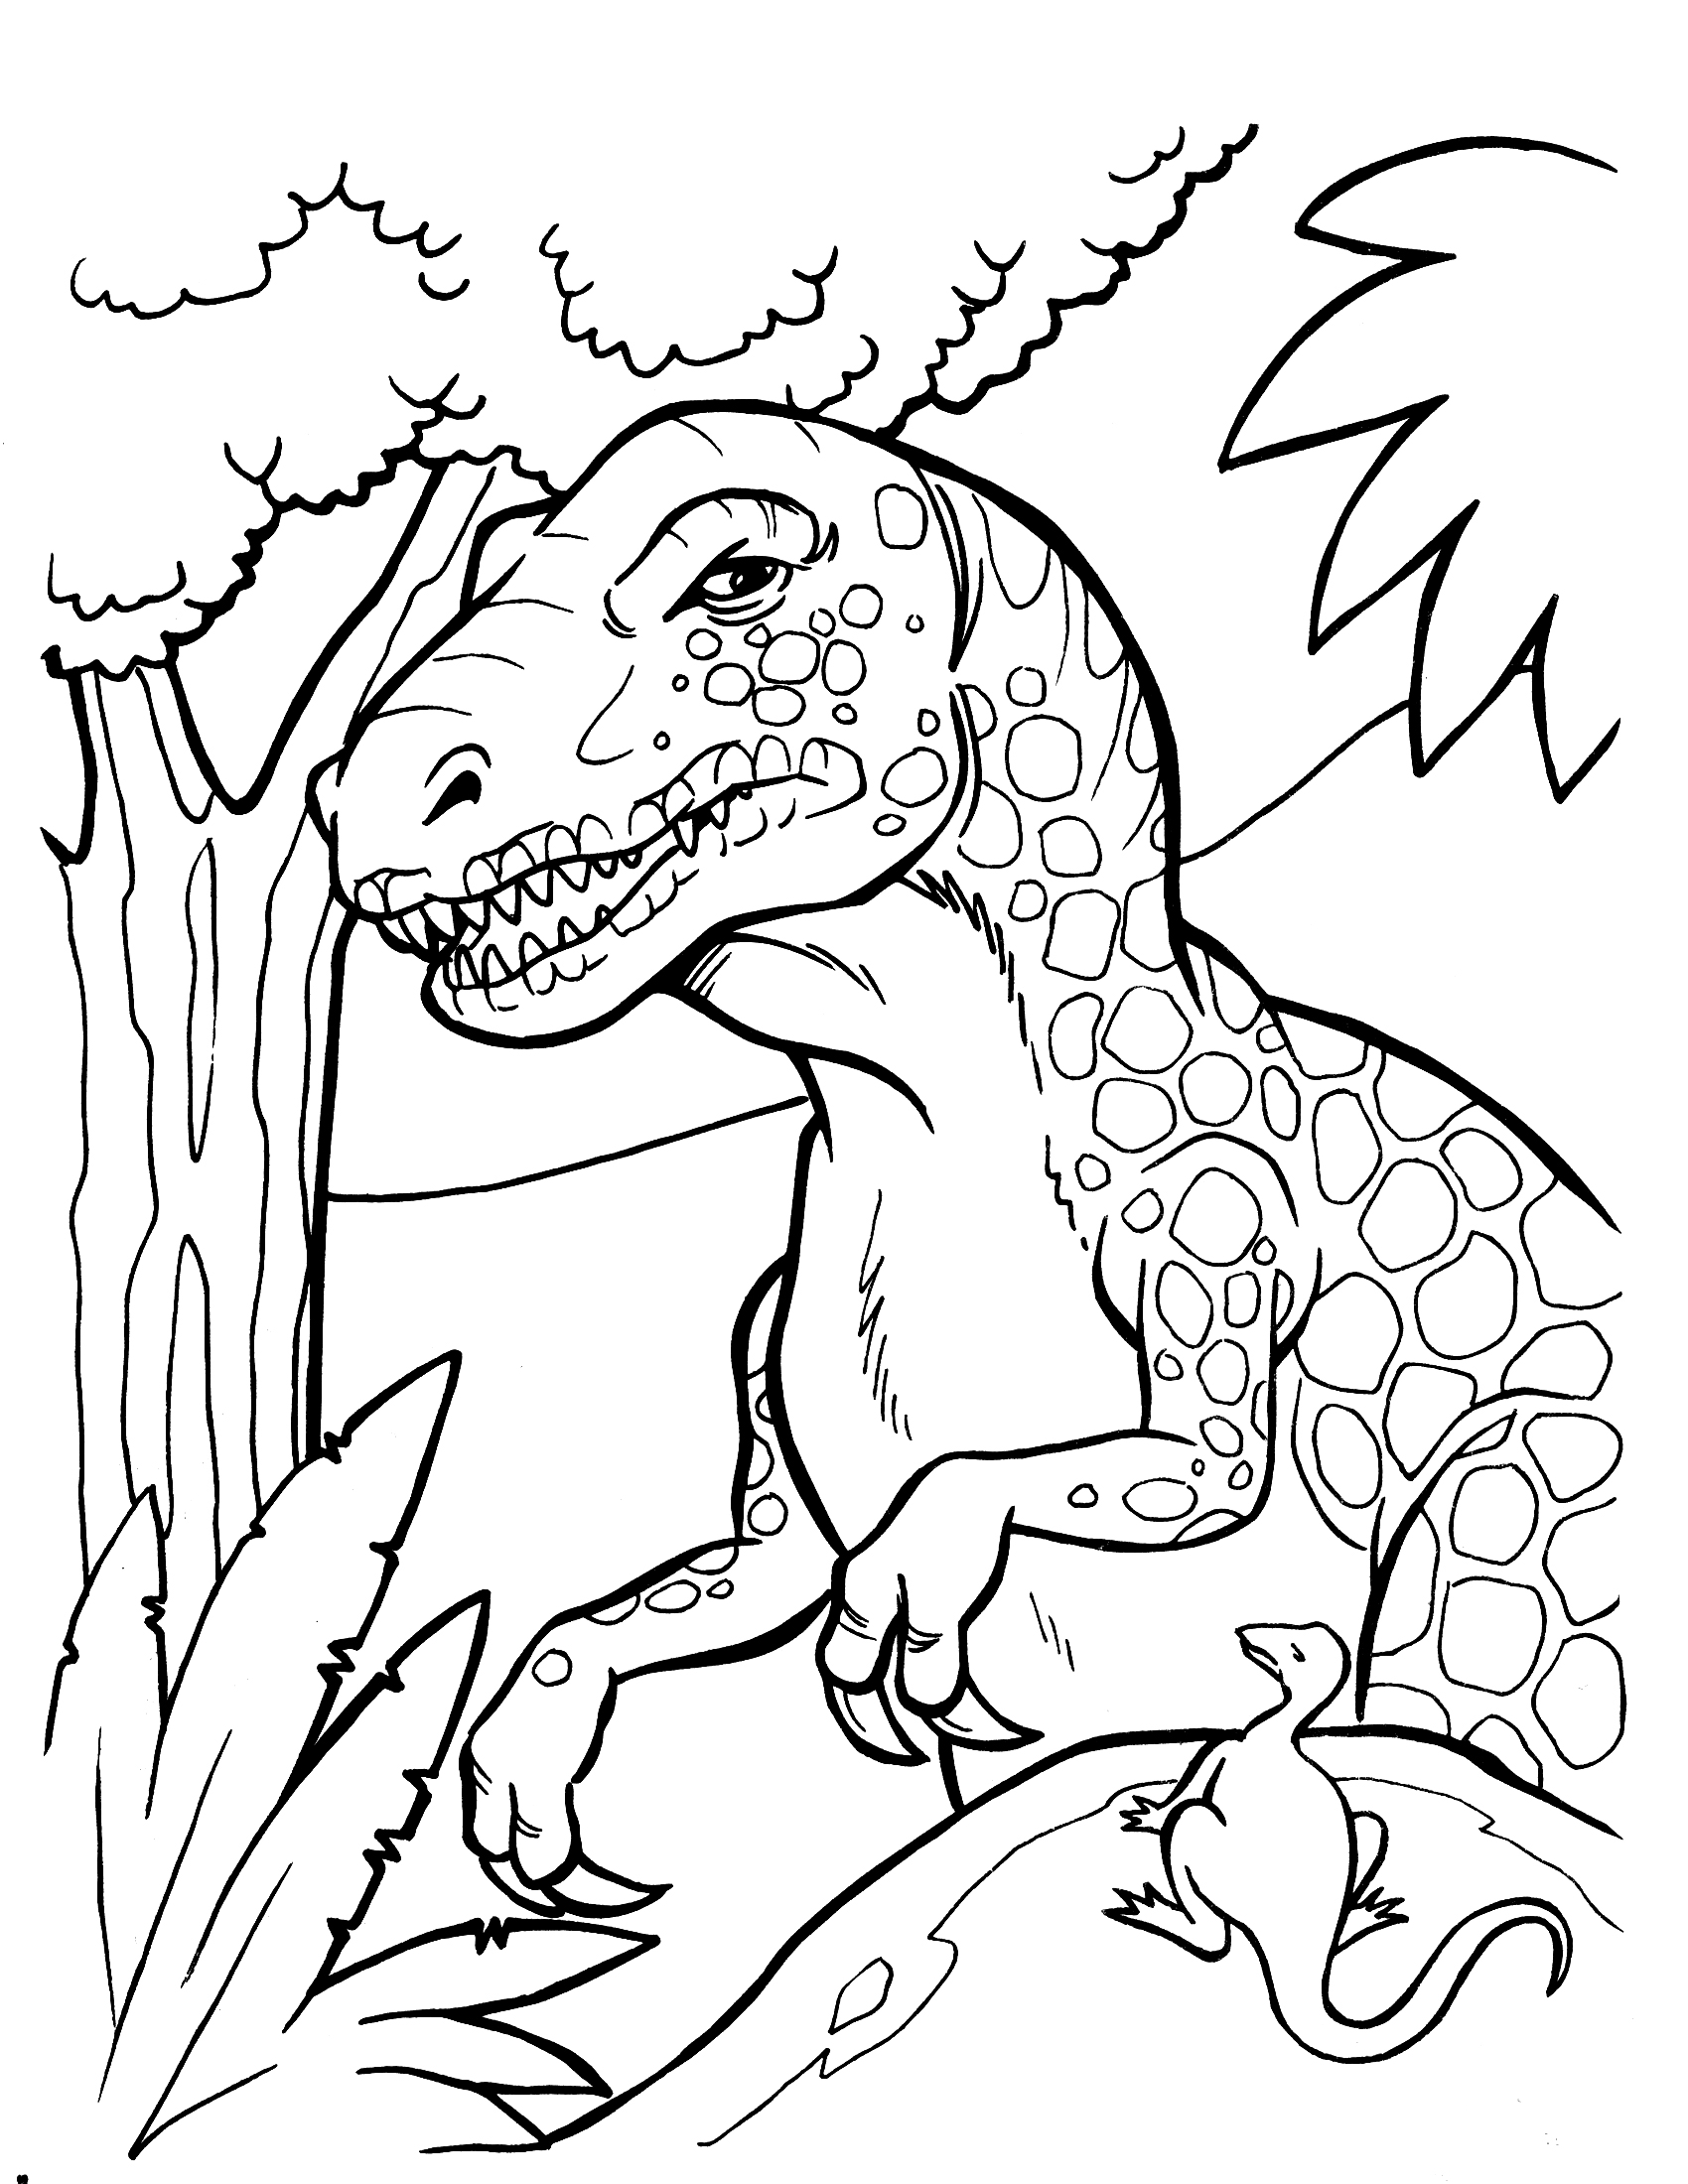 dinosaur coloring book pages dinosaur coloring pages to download and print for free coloring book dinosaur pages